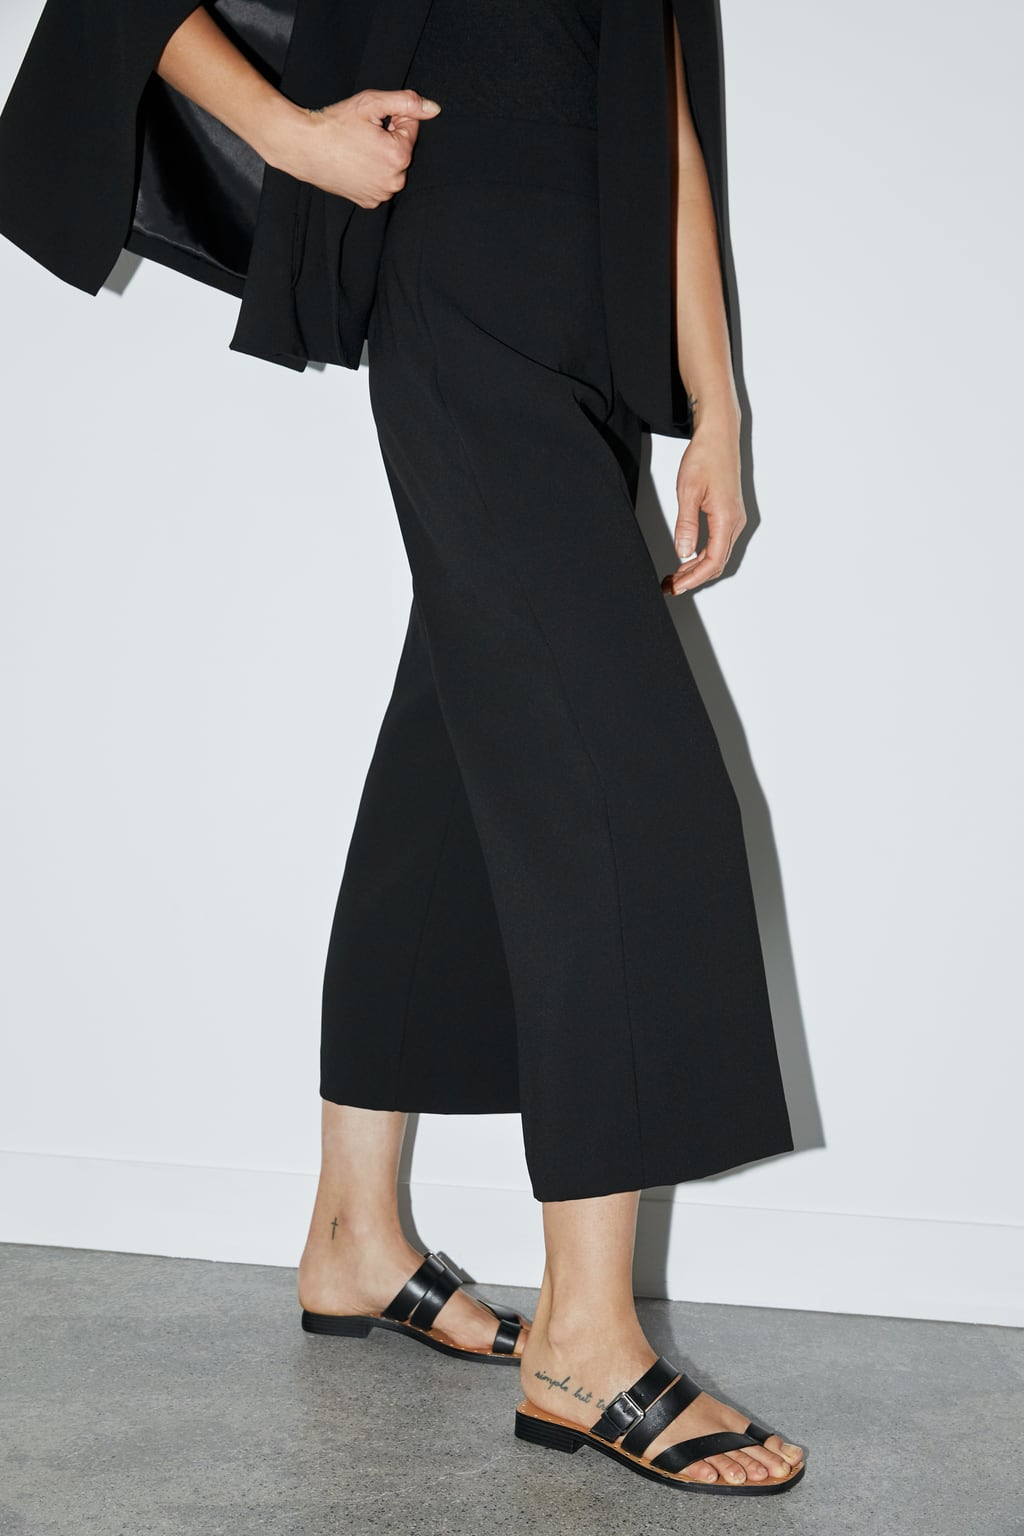 7a71bbef CULOTTES-Collection-TIMELESS-WOMAN-CORNER SHOPS | ZARA United States